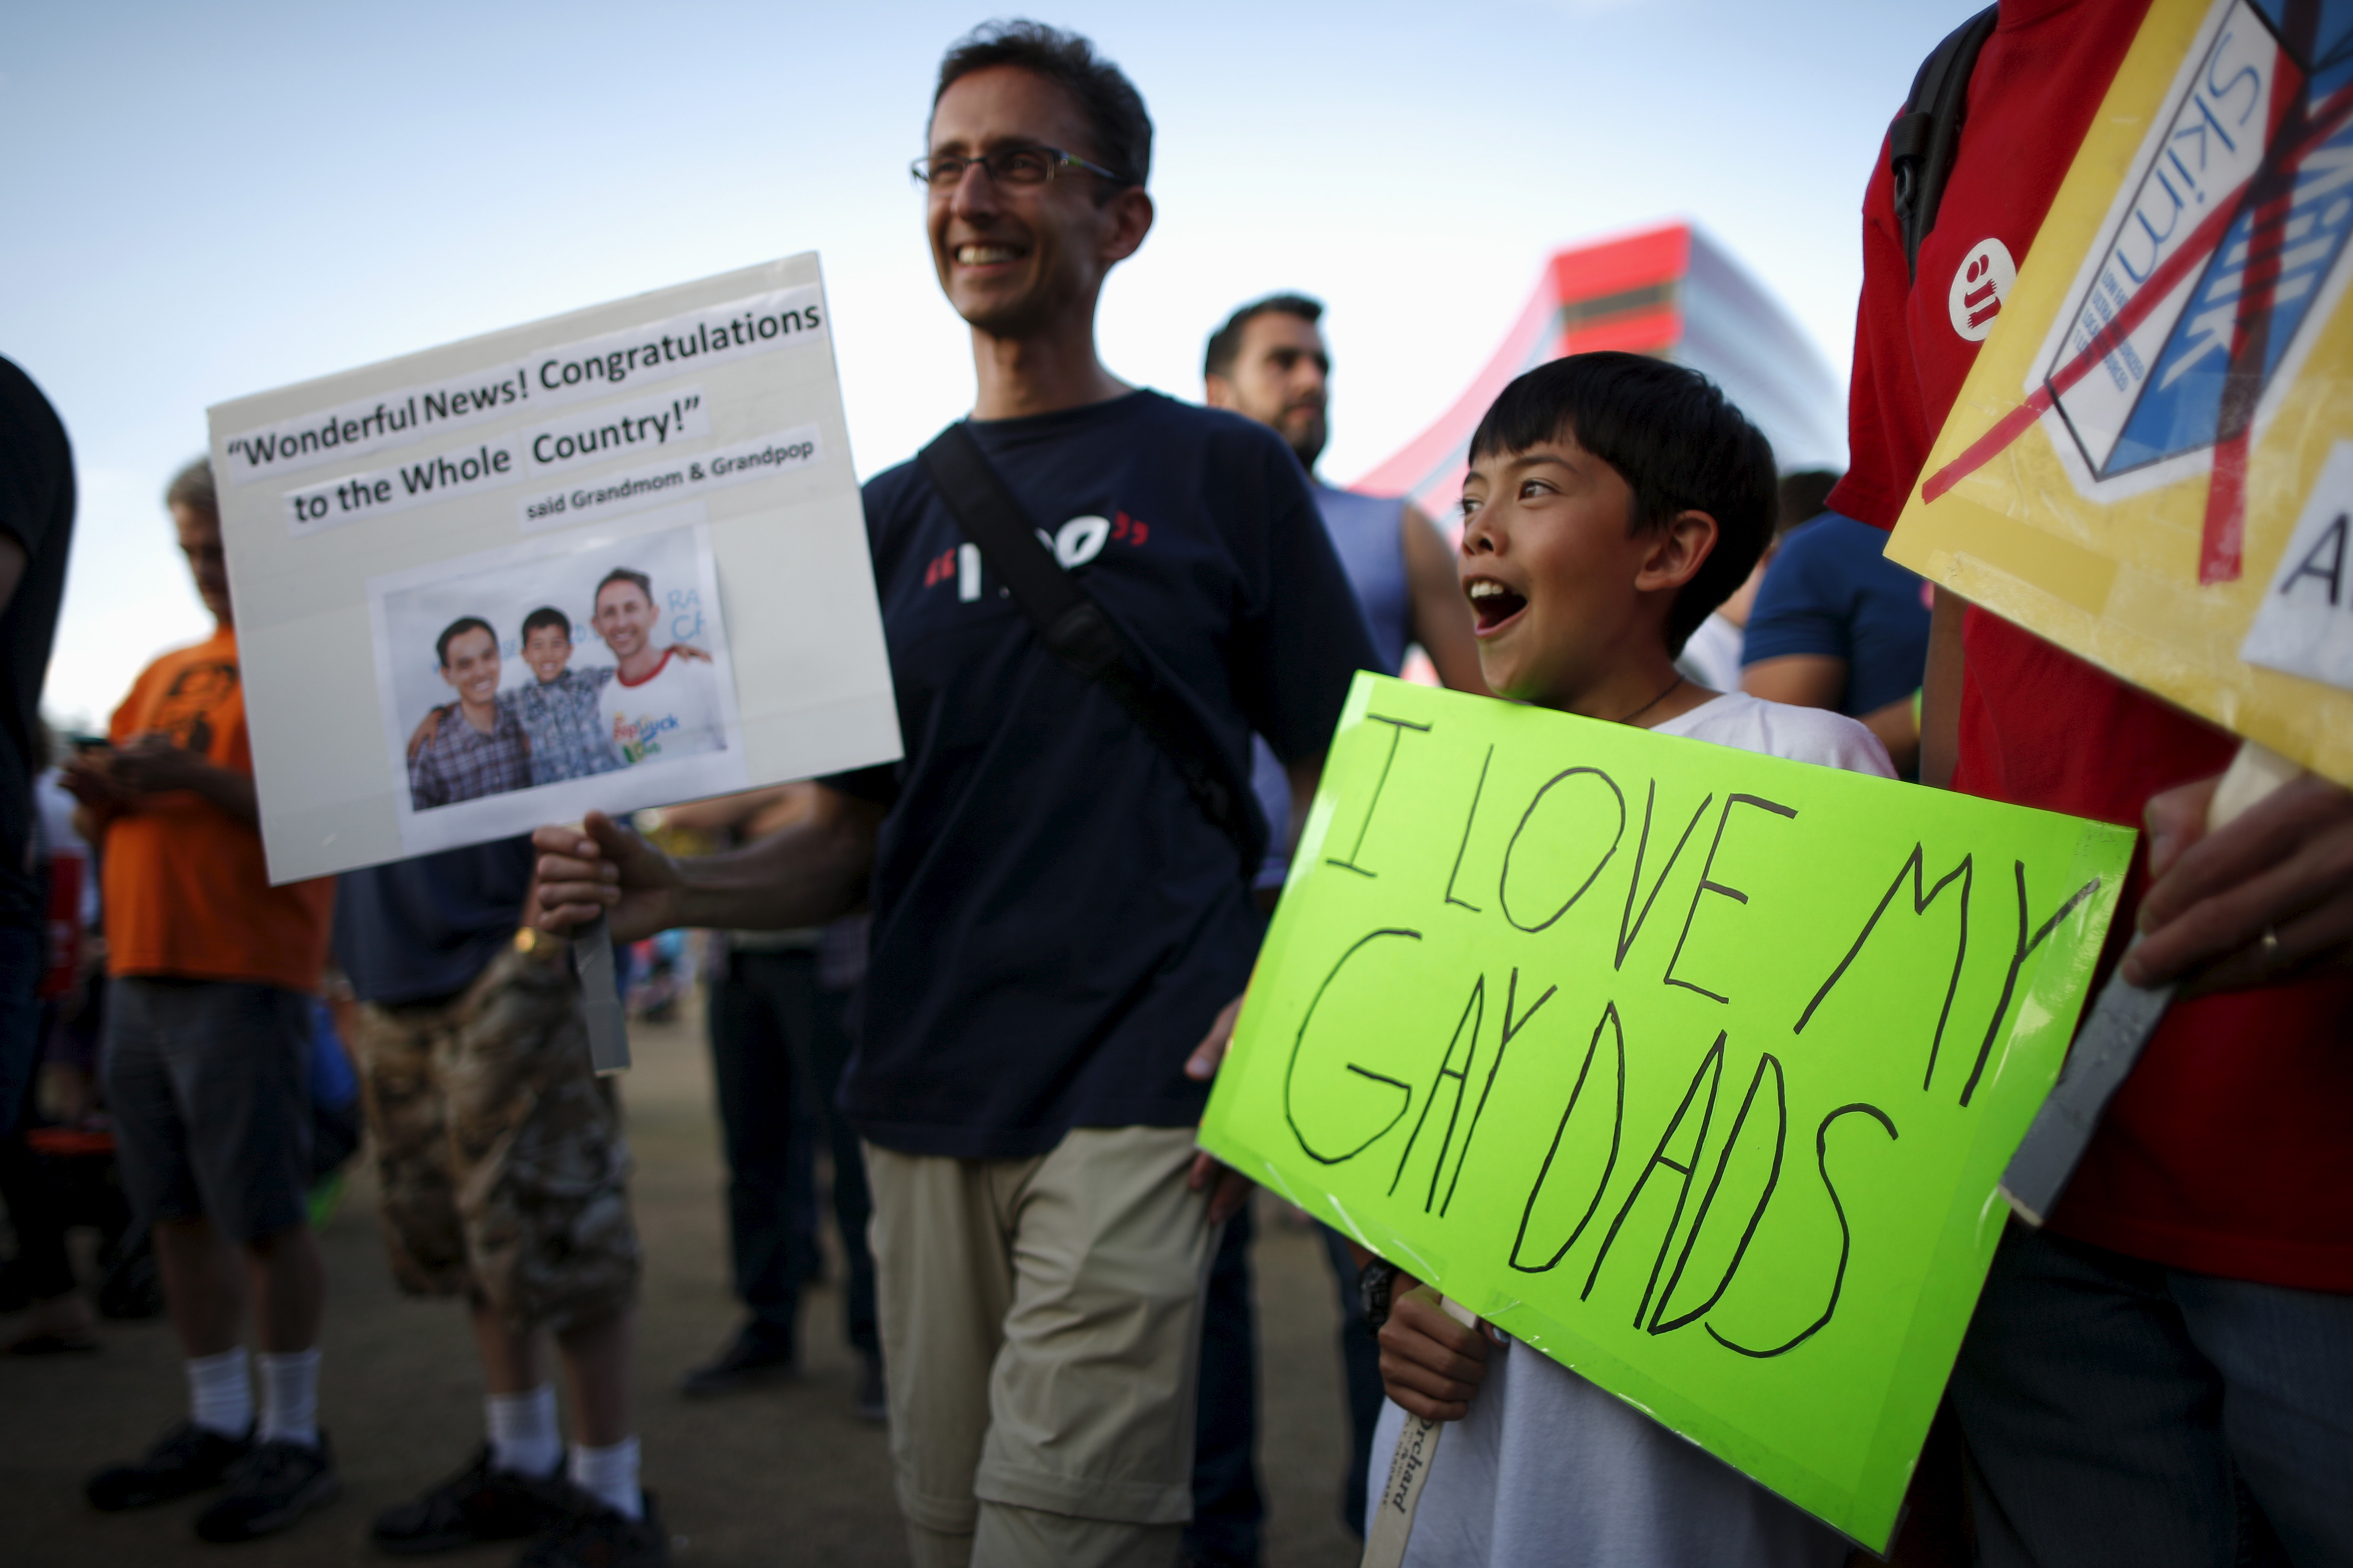 Aaron Ky-Riesenbach, 12, (R) carries a sign as he stands with his father Larry Riesenbach, 55, at a celebration rally in West Hollywood, California, United States, June 26, 2015. The U.S. Supreme Court ruled on Friday that the U.S. Constitution provides same-sex couples the right to marry in a historic triumph for the American gay rights movement. REUTERS/Lucy Nicholson - RTX1I0I0